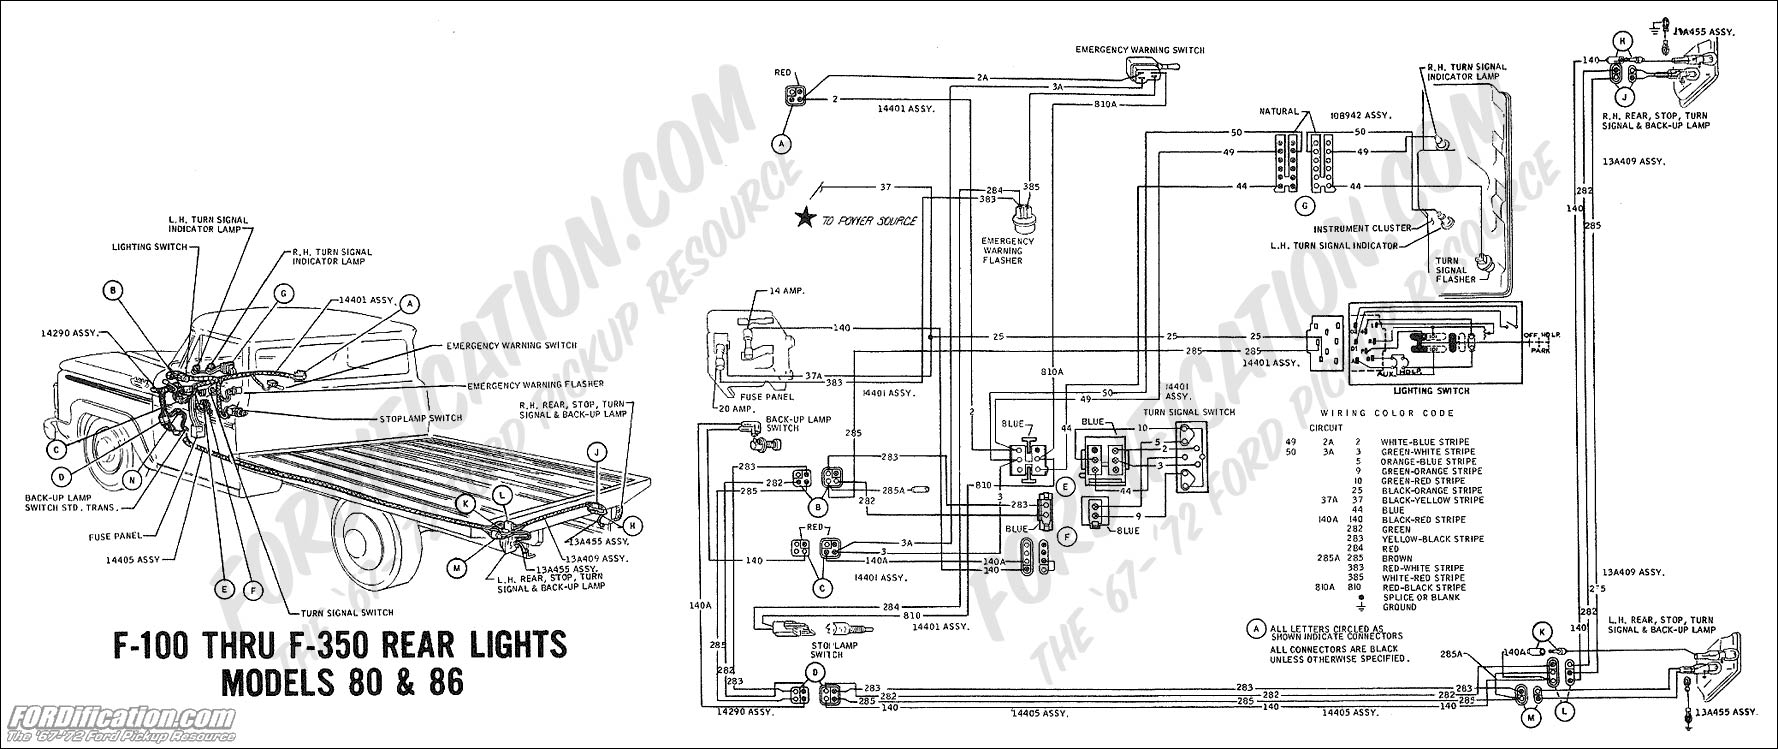 3htda Alternator Fuse 1999 F 150 additionally 85 K5 Wiper Switch Wiring Diagram besides 1285043 The Carb Distributor Conversion And Cleanup also 1170740 Need To Find Heater Hose Manifold Connector Ideas likewise OtHoao. on 1986 ford f 250 wiring diagram